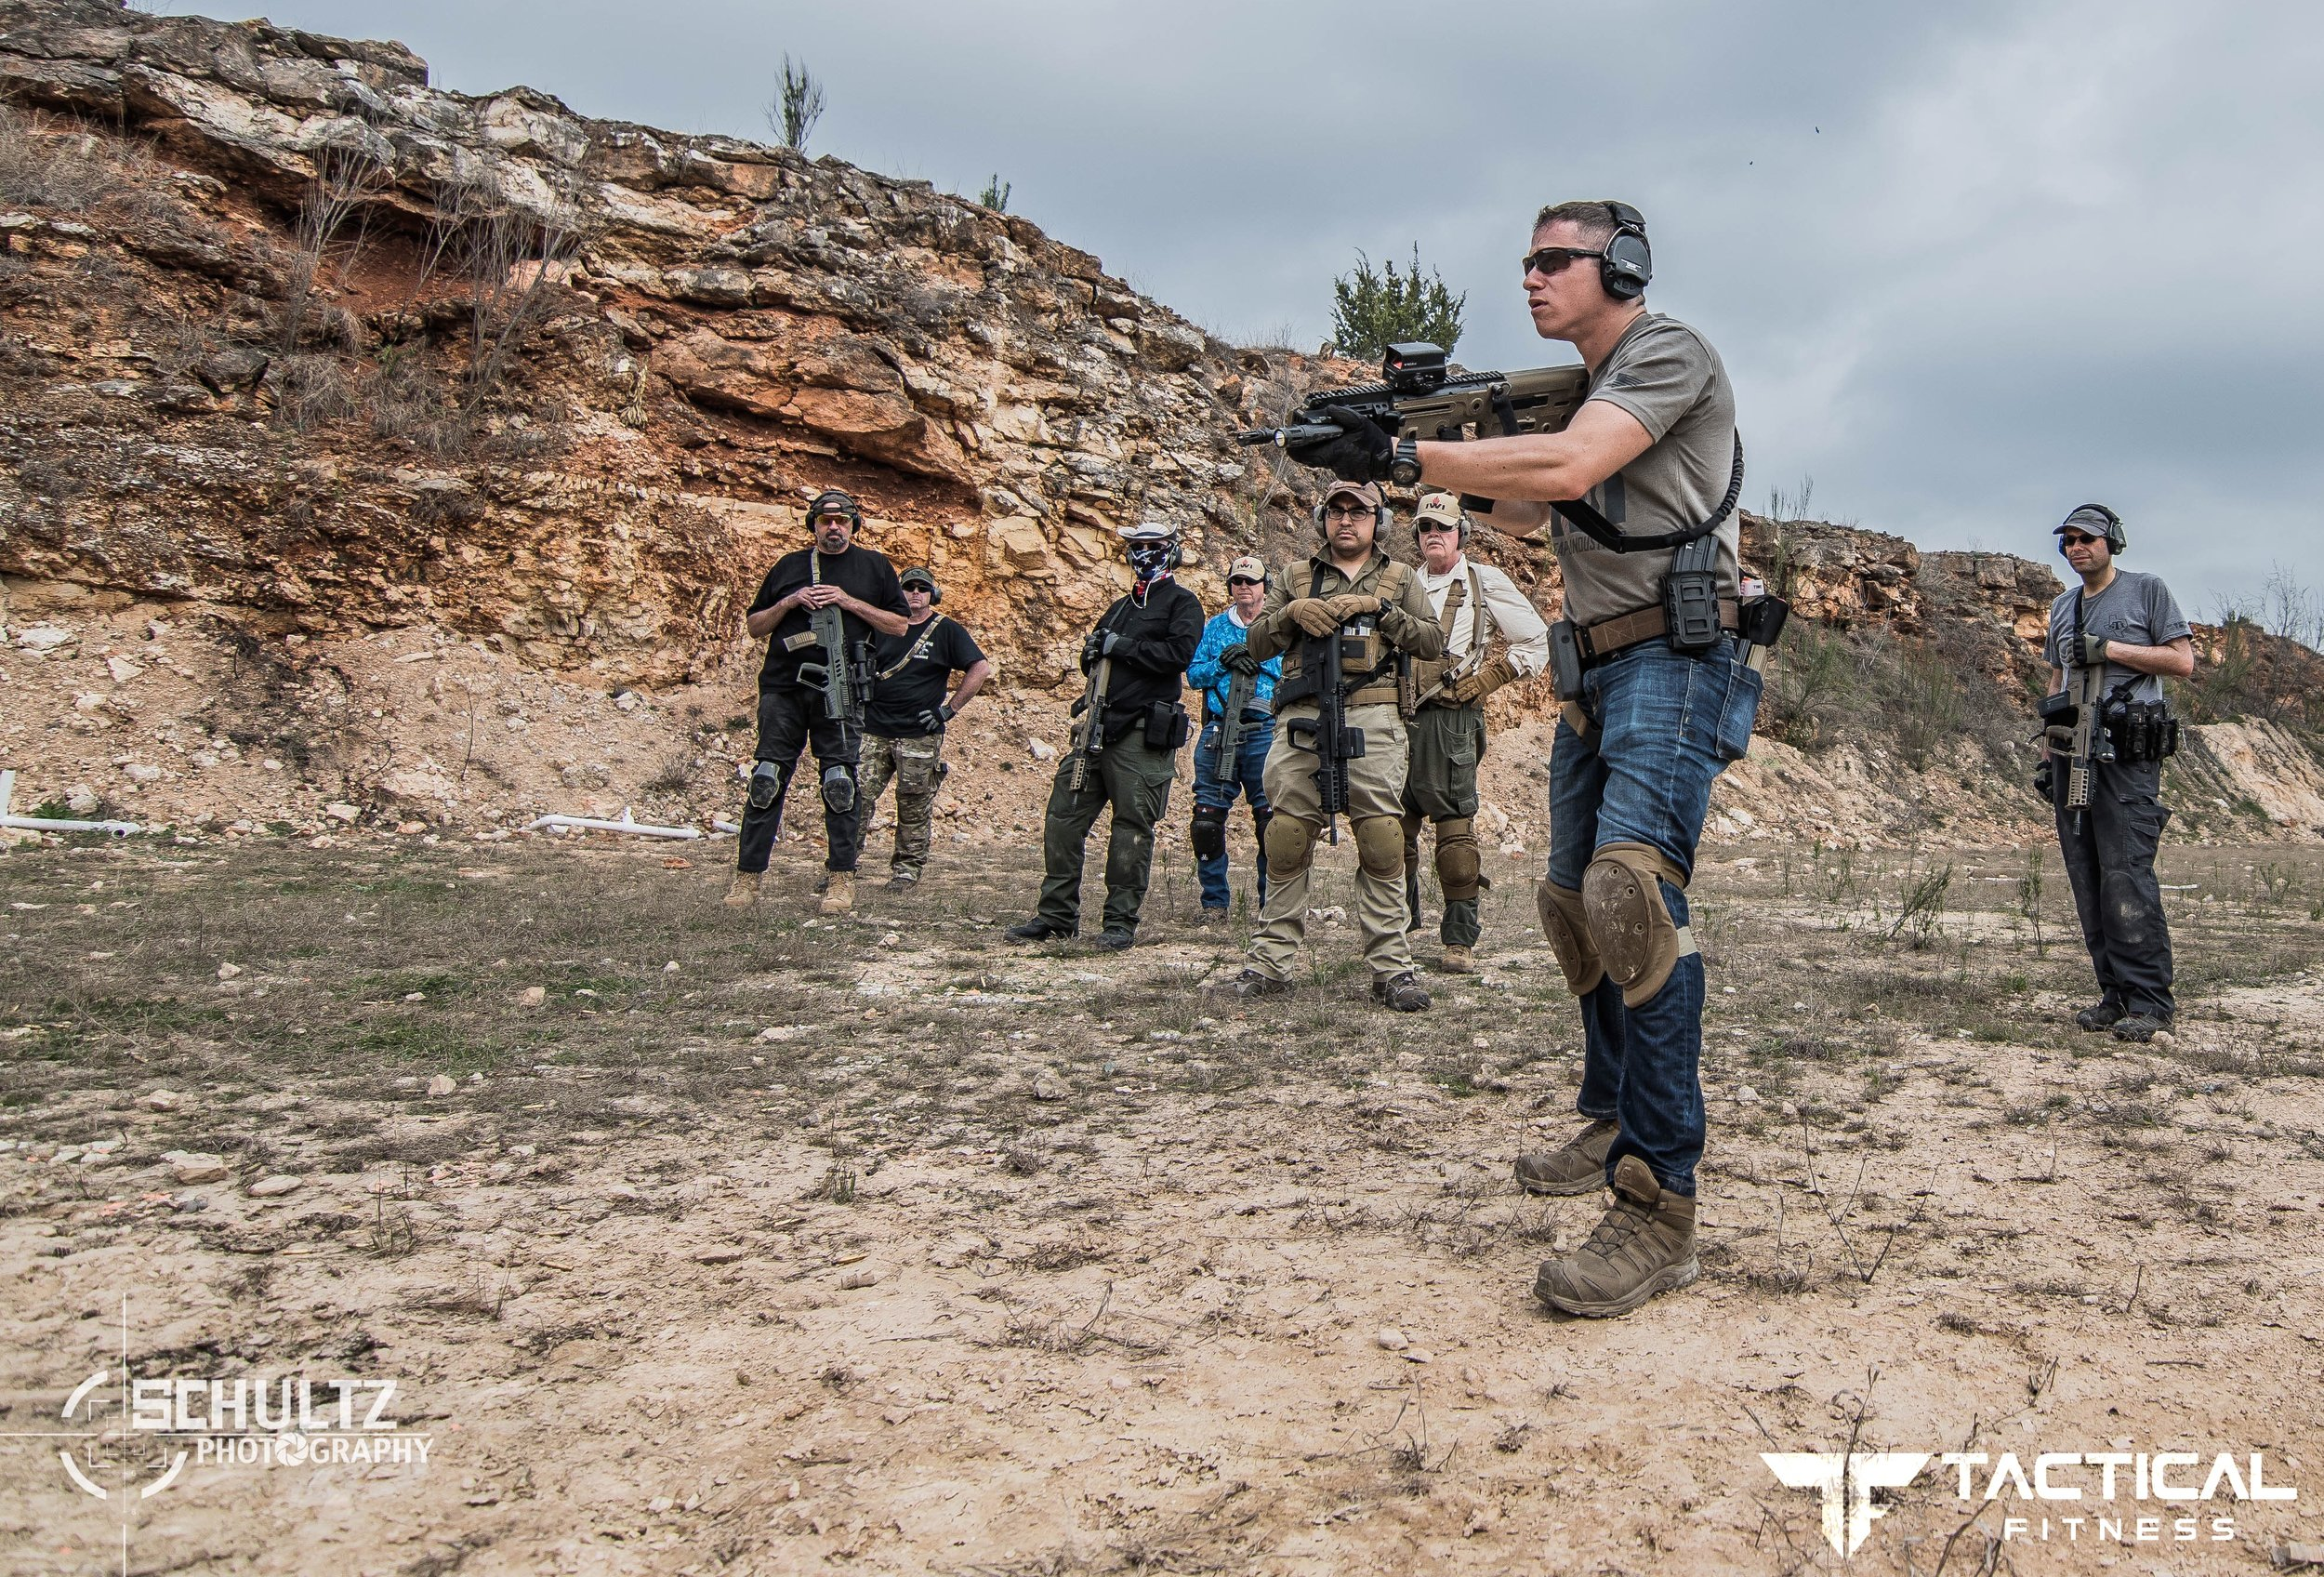 Tactical courses property of Tactical Fitness